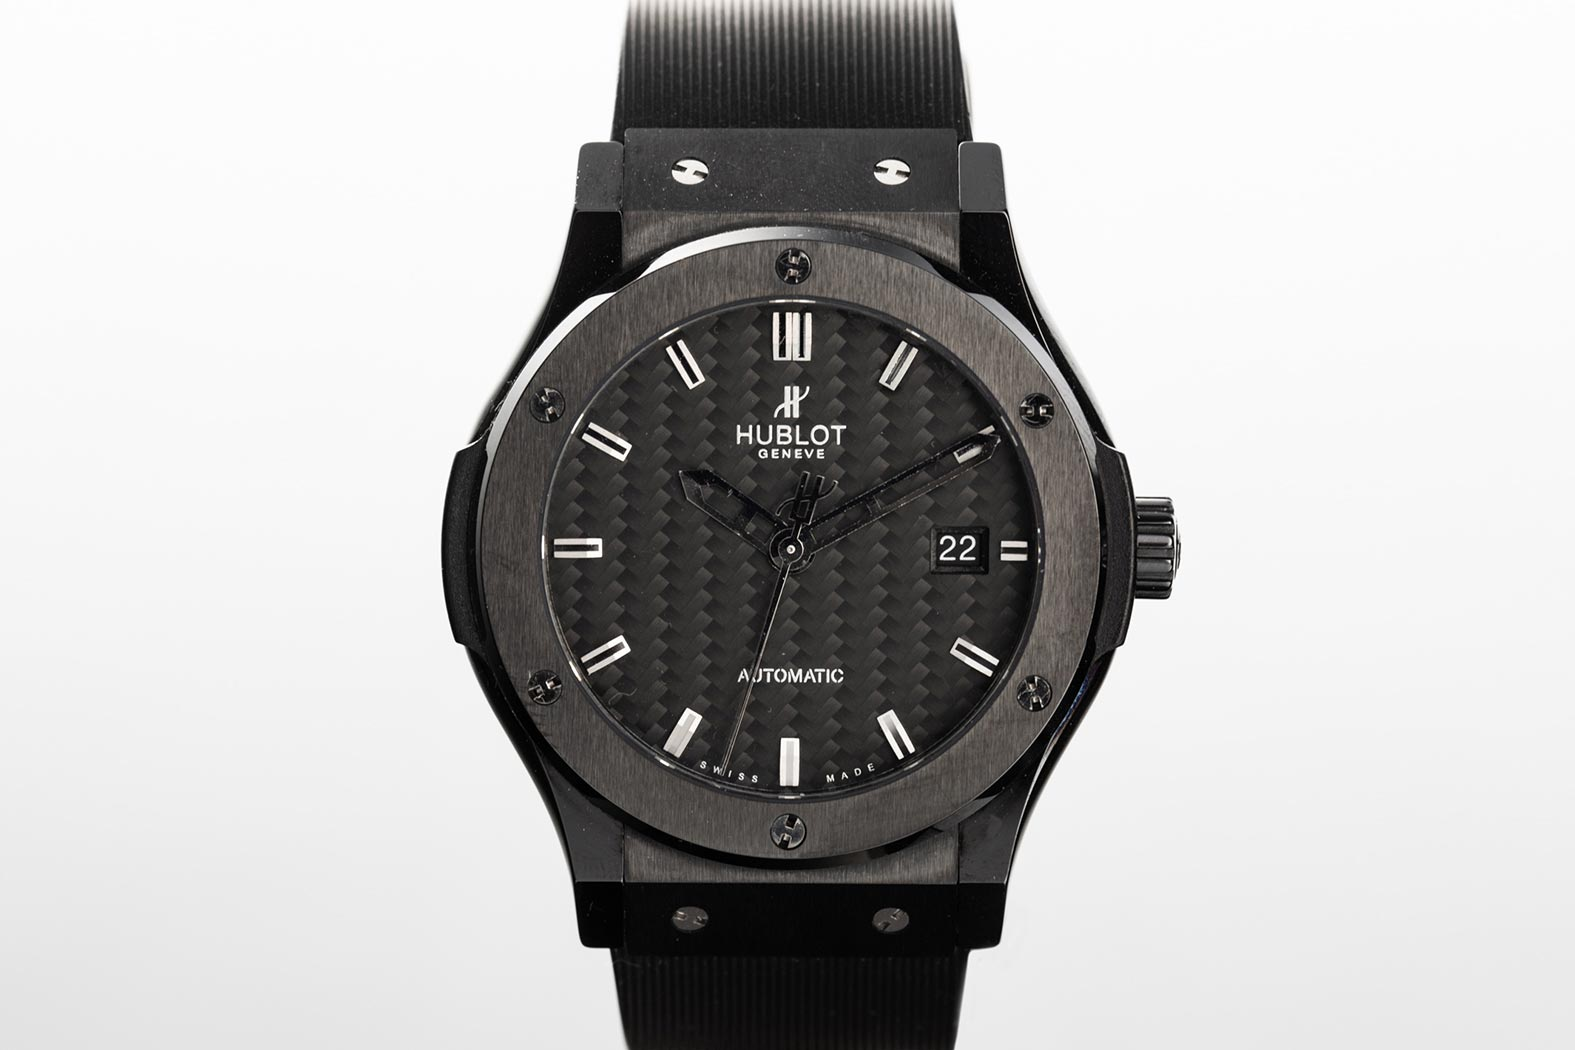 hublot - Black ceramic